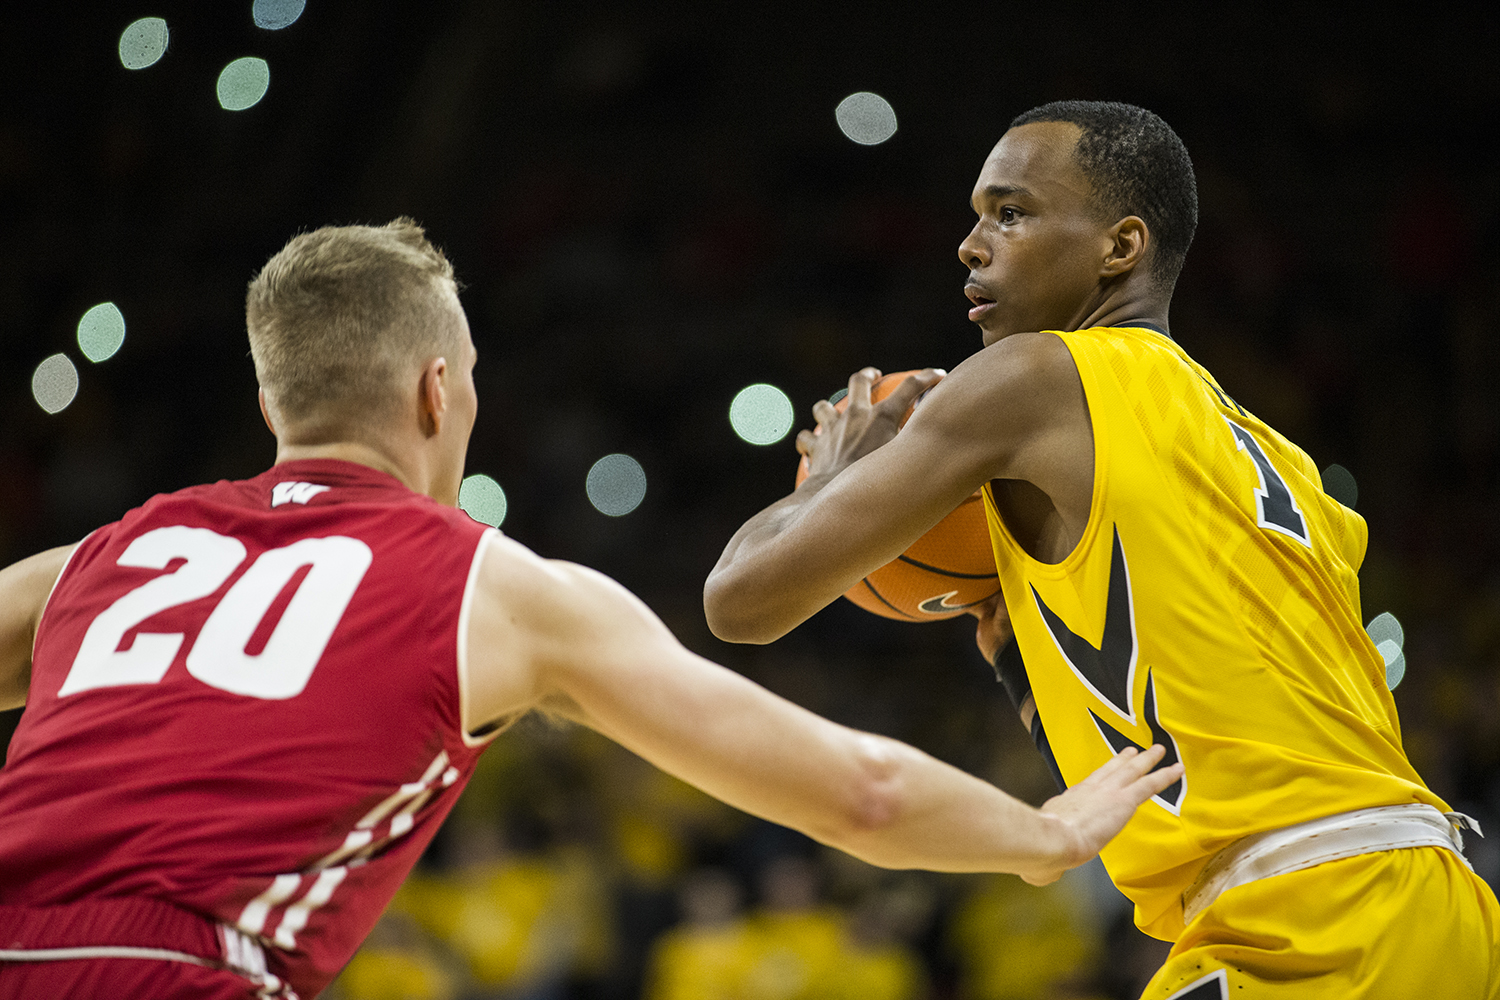 Iowa guard Maishe Dailey (1) looks for an open pass around Wisconsin's T.J. Schlundt (20) during the NCAA men's basketball game between Iowa and Wisconsin at Carver-Hawkeye Arena on Tuesday, Jan. 23, 2018. The Hawkeyes are going into the game with a conference record of 1-7. Iowa went on to defeat Wisconsin 85-67.